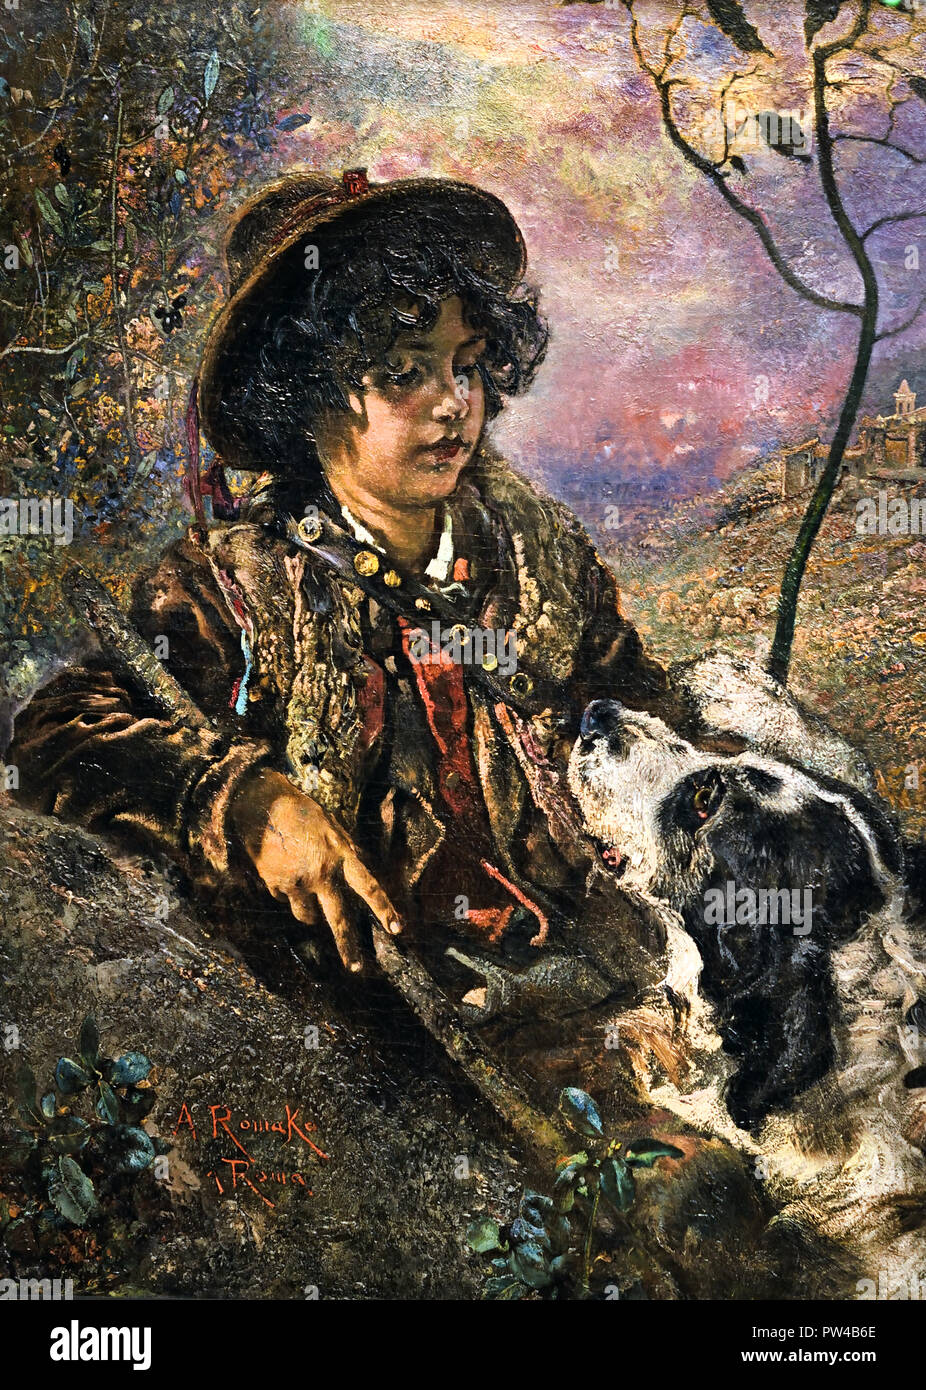 Young Italian Shepherd with Dog 1884/85 by Anton Romako 1832 – 1889  Austrian painter. Austria . ( Anton Romako was one of the great pioneers of Modernism ) - Stock Image